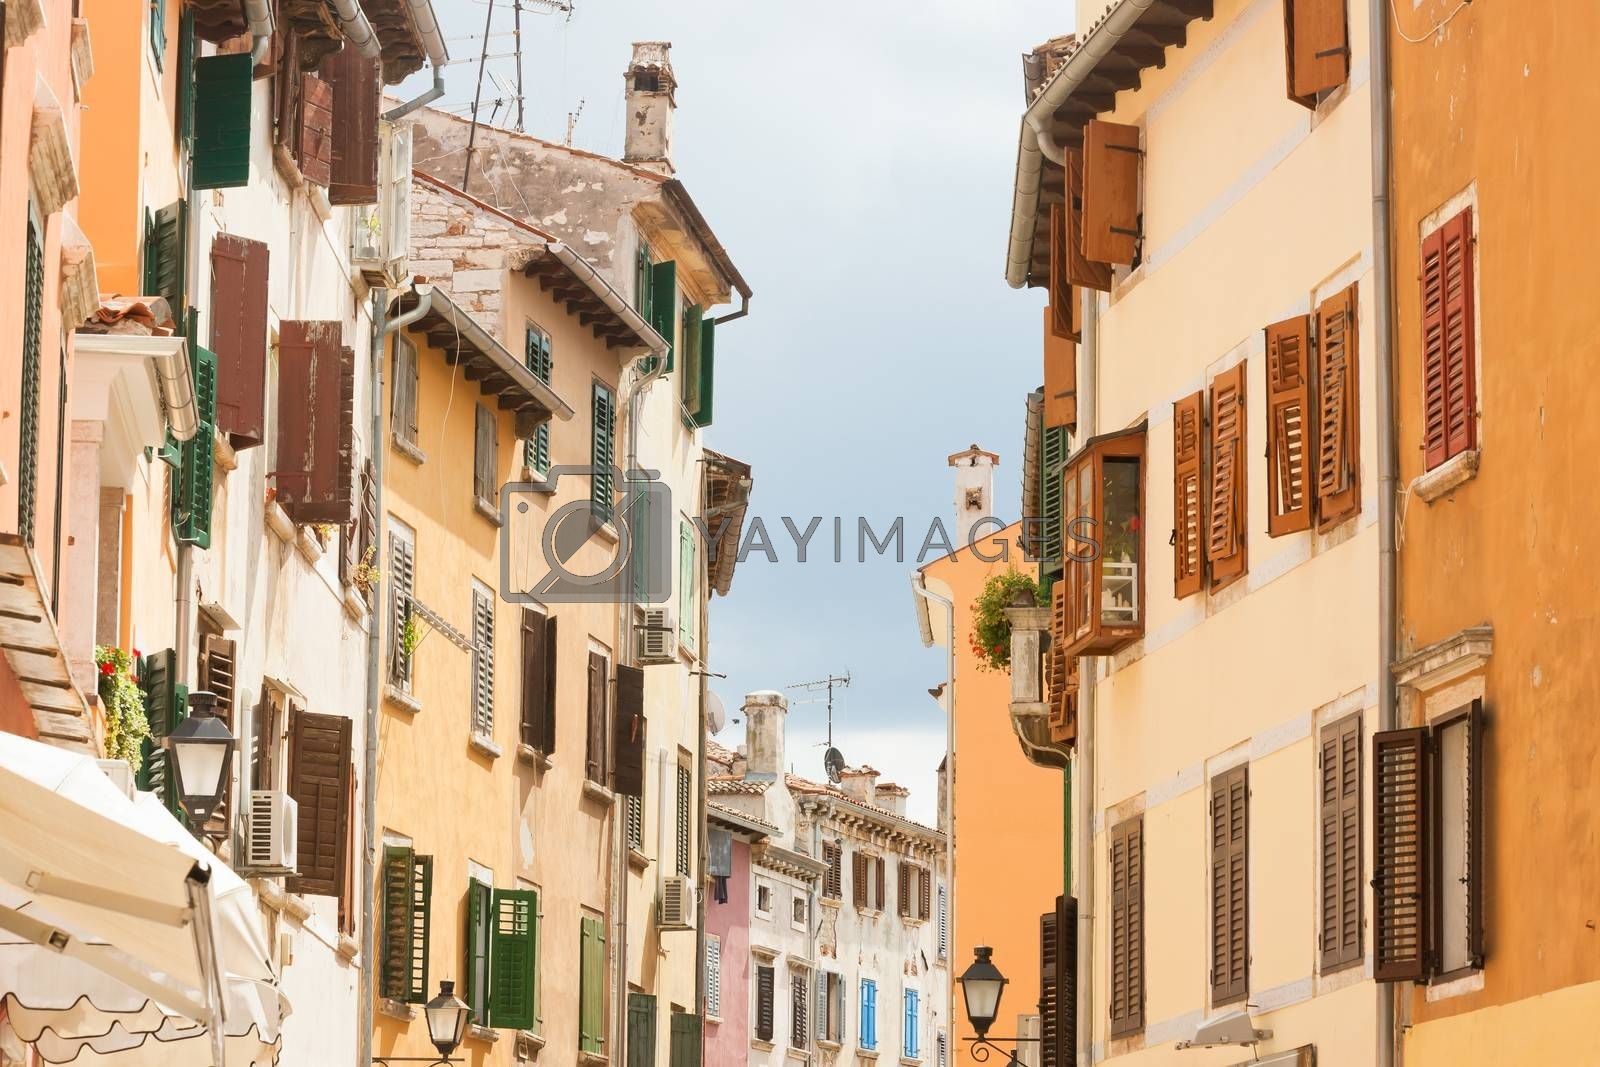 Royalty free image of Rovinj, Istria, Croatia - Living history in the streets of Rovin by tagstiles.com